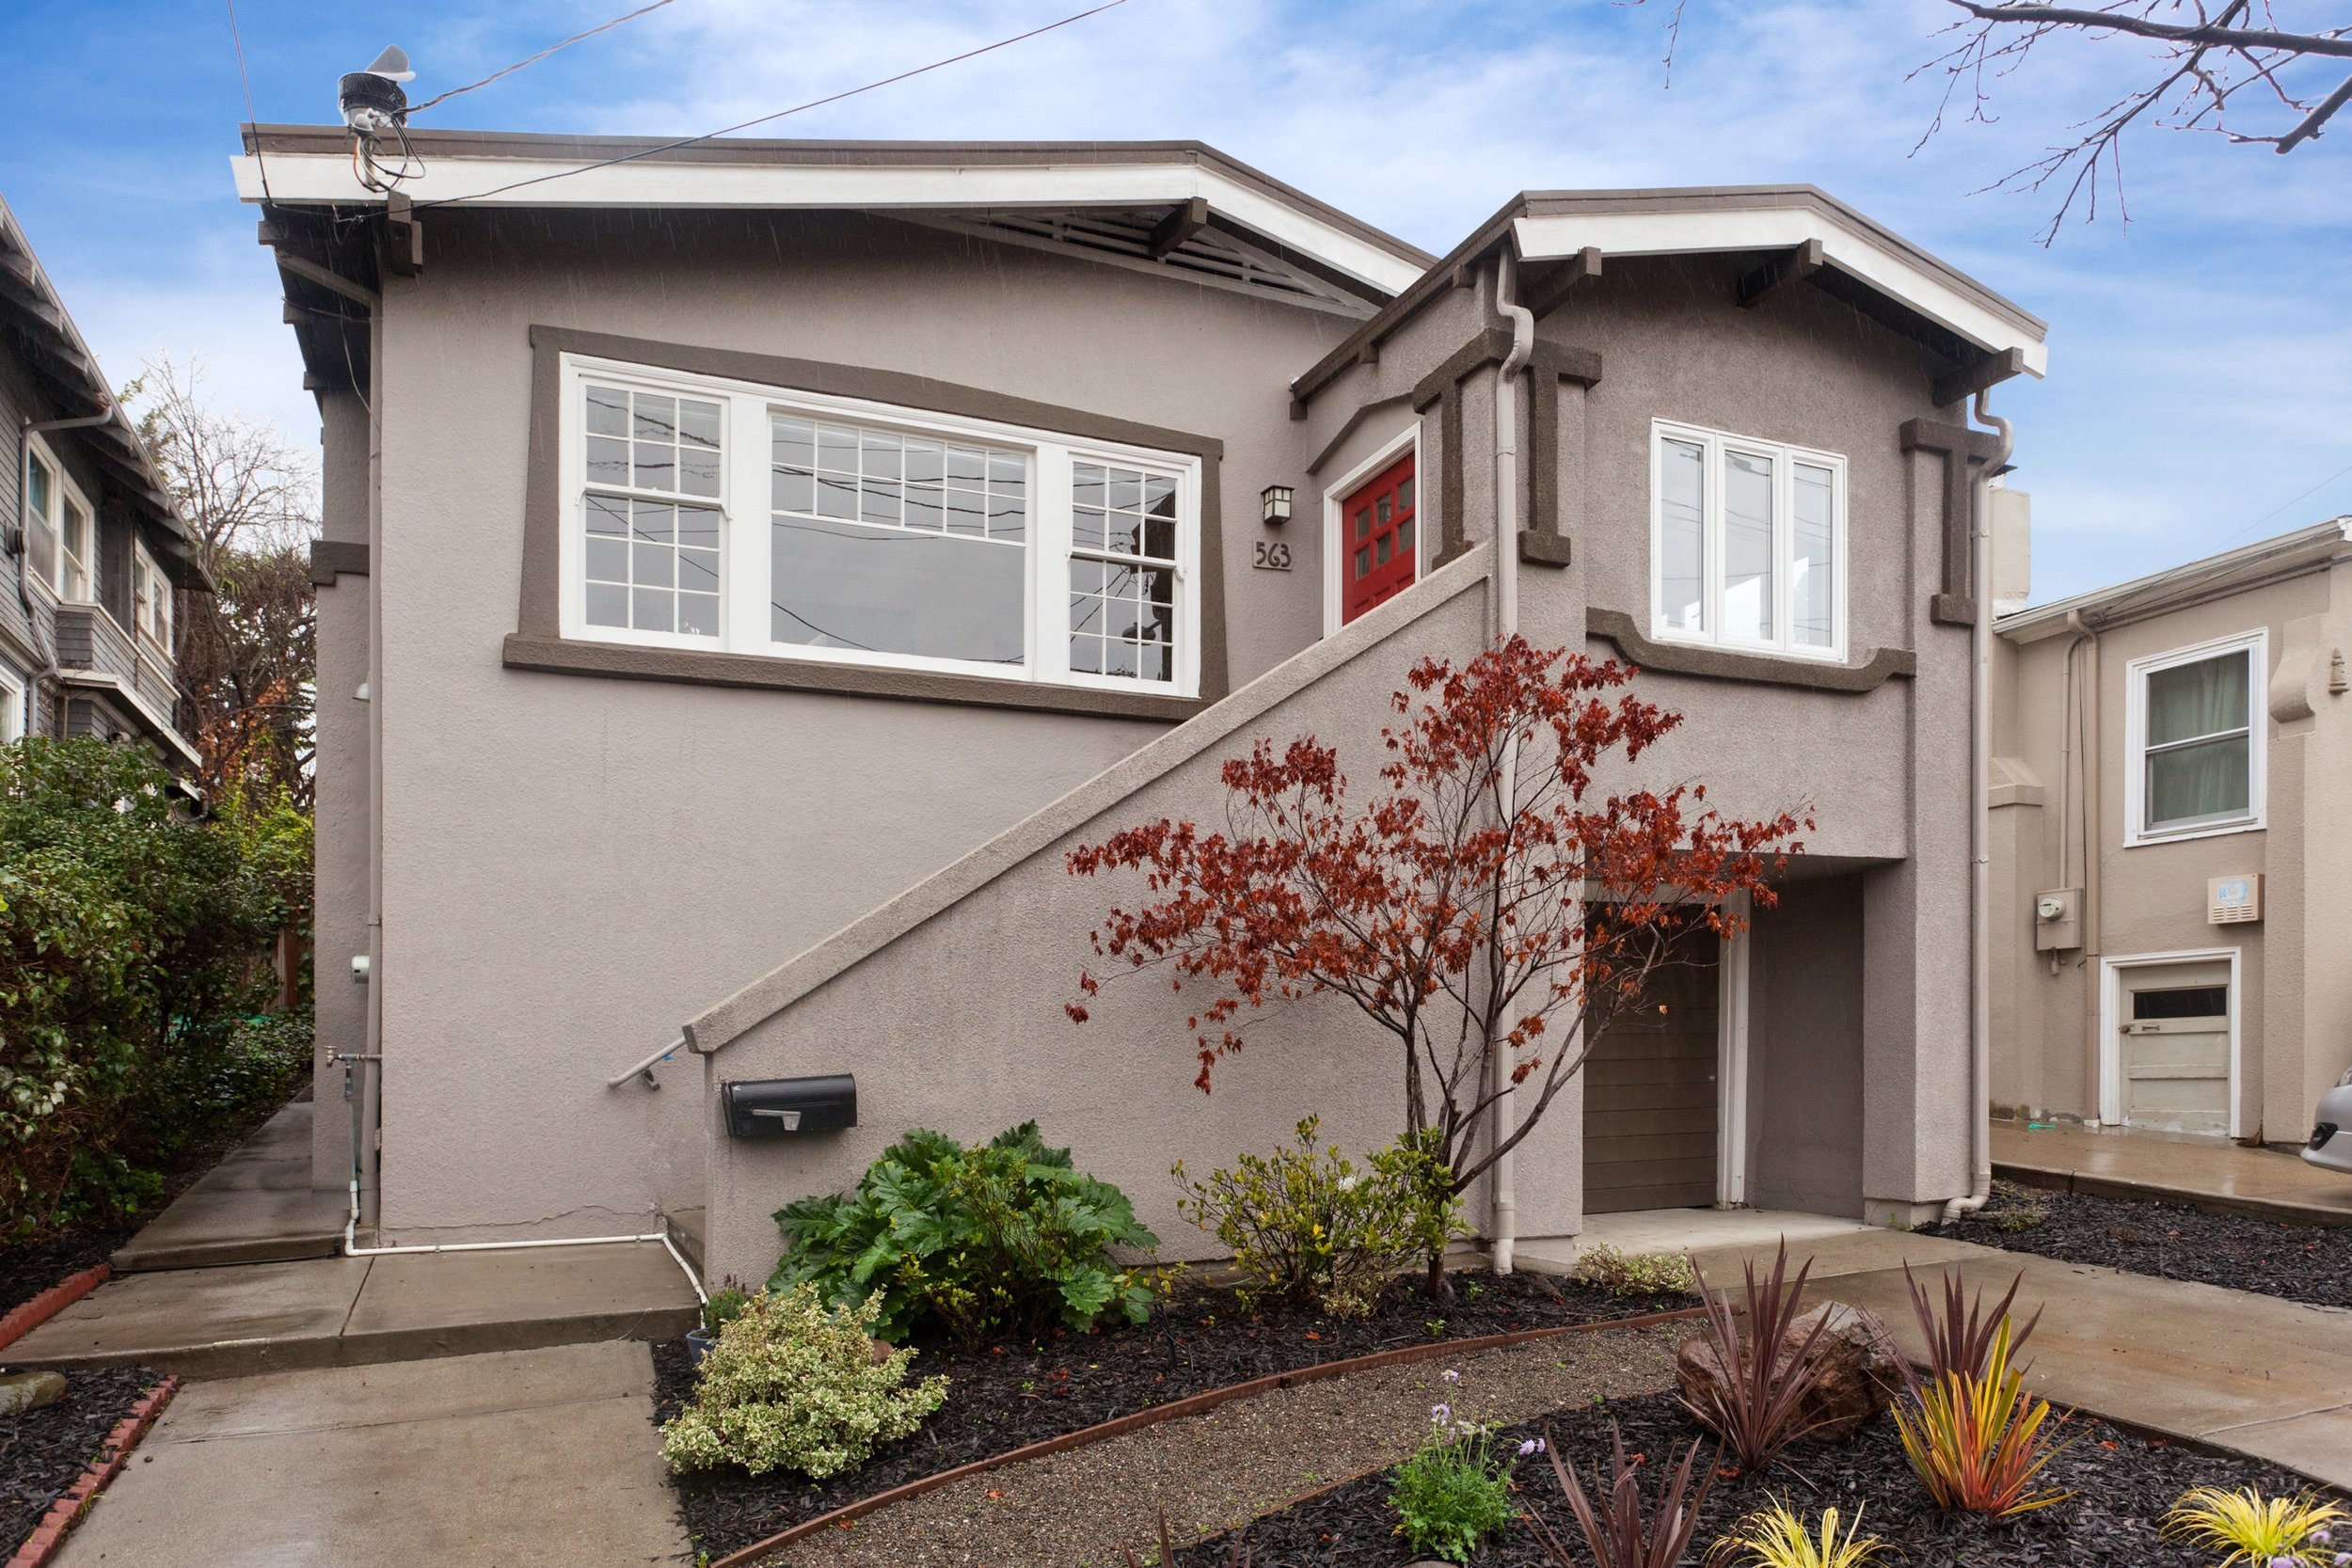 SOLD | 563 CHETWOOD STREET, OAKLAND $1,100,000